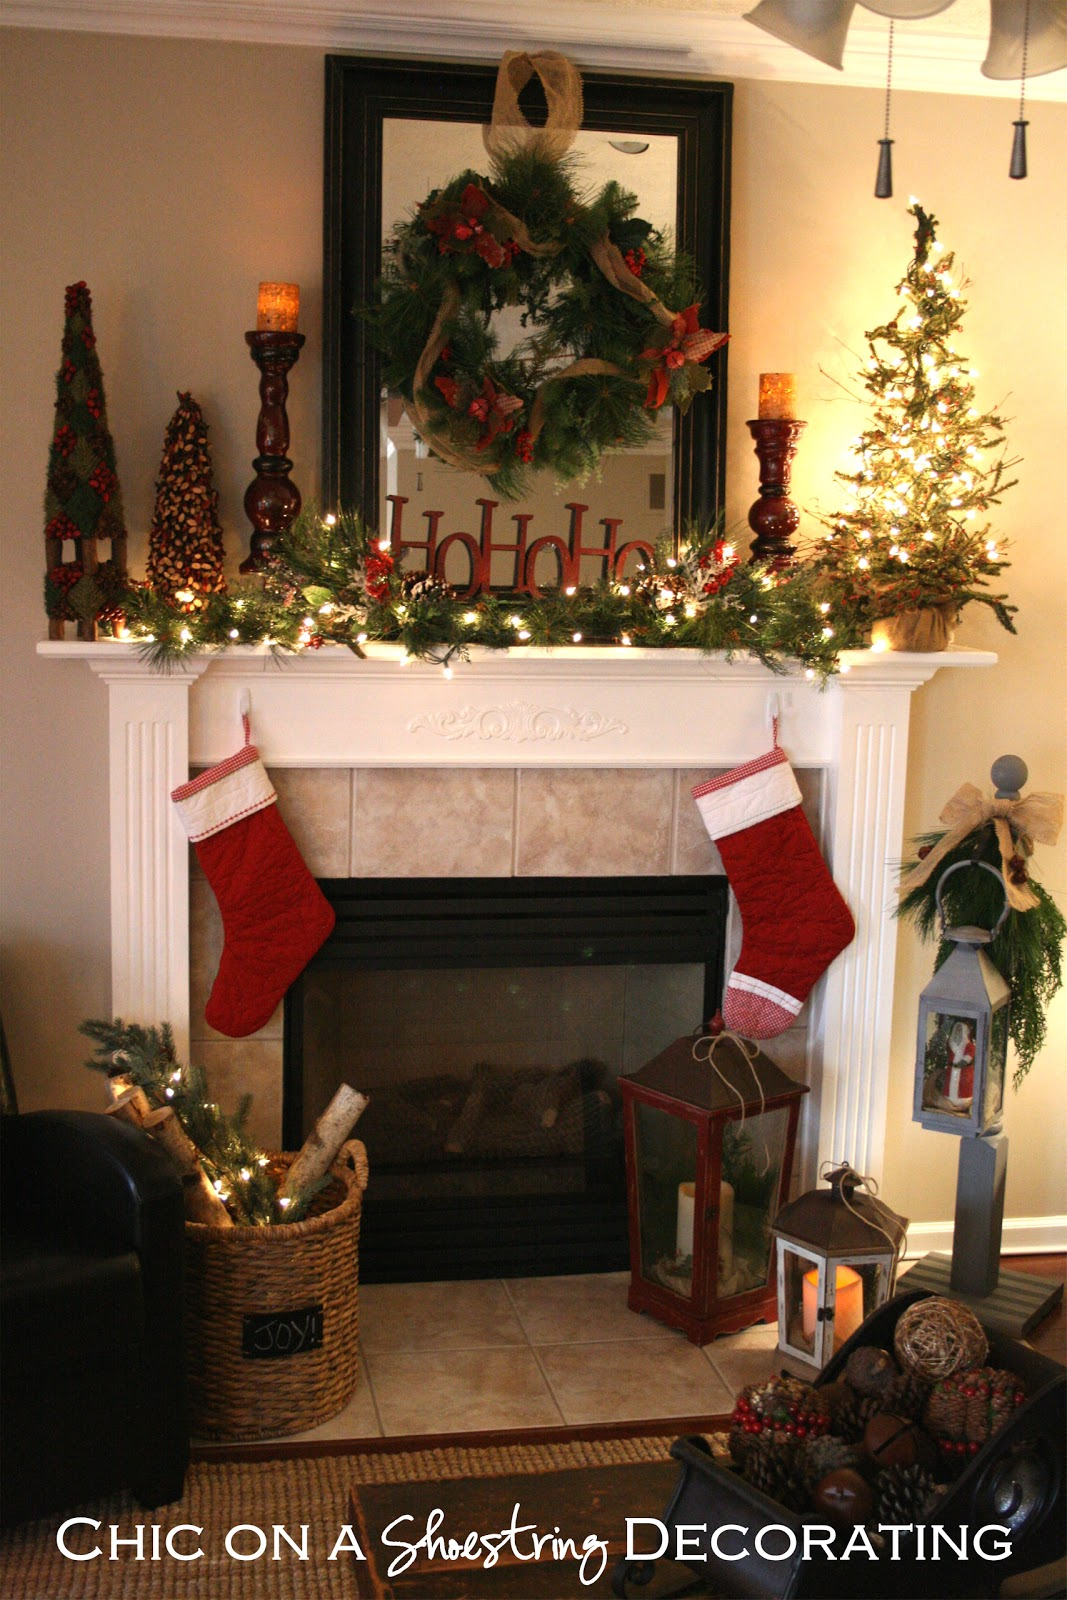 Chic on a shoestring decorating rustic christmas mantel for Christmas mantel design ideas